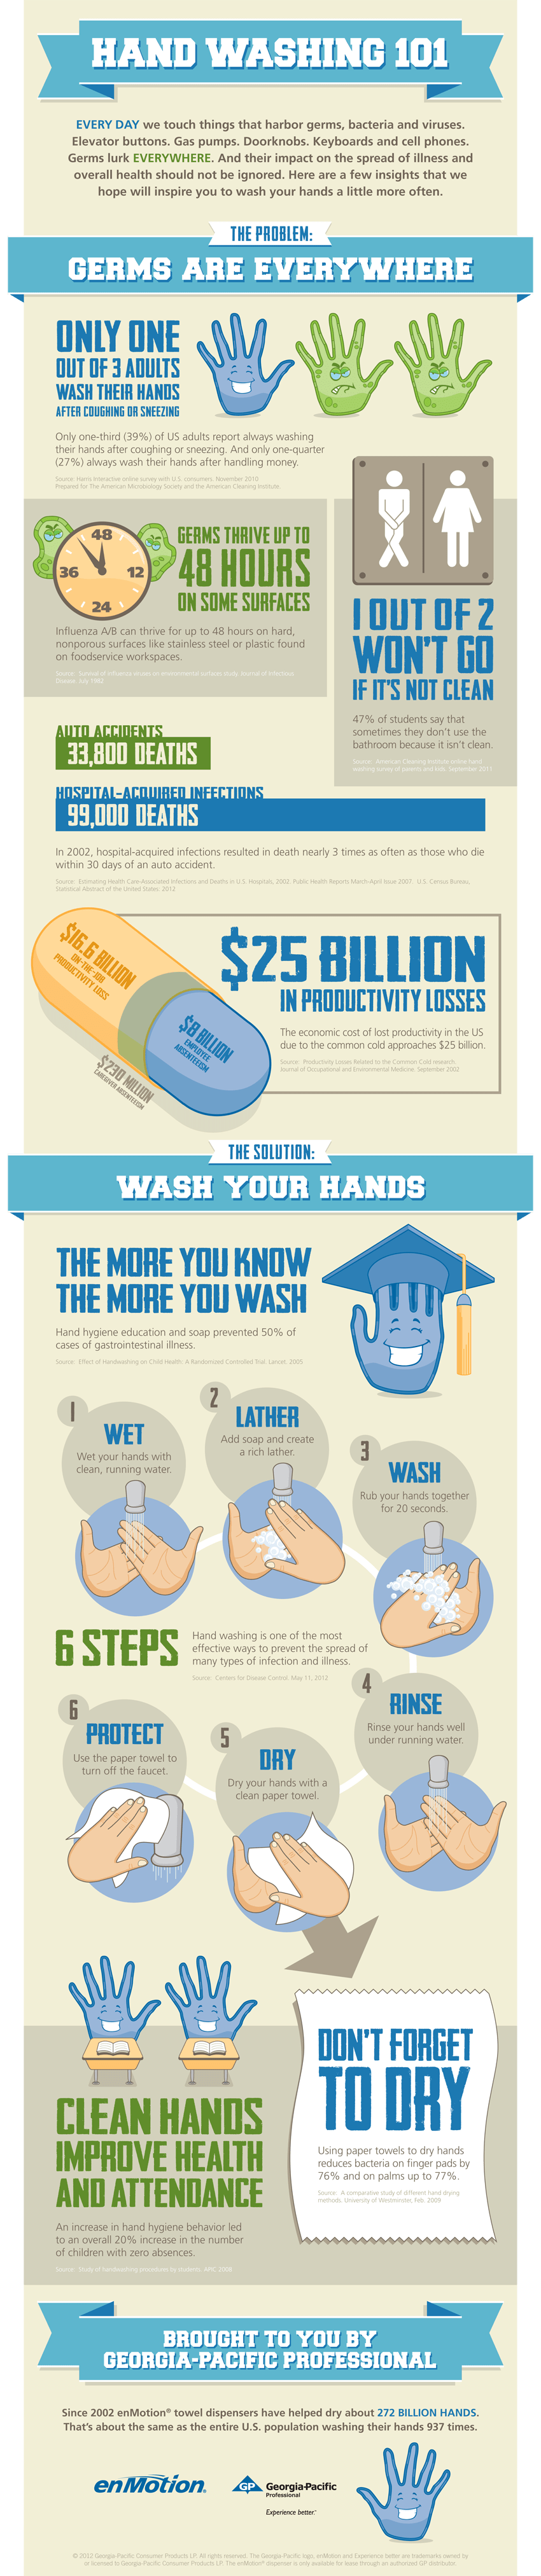 Hand Washing Basics